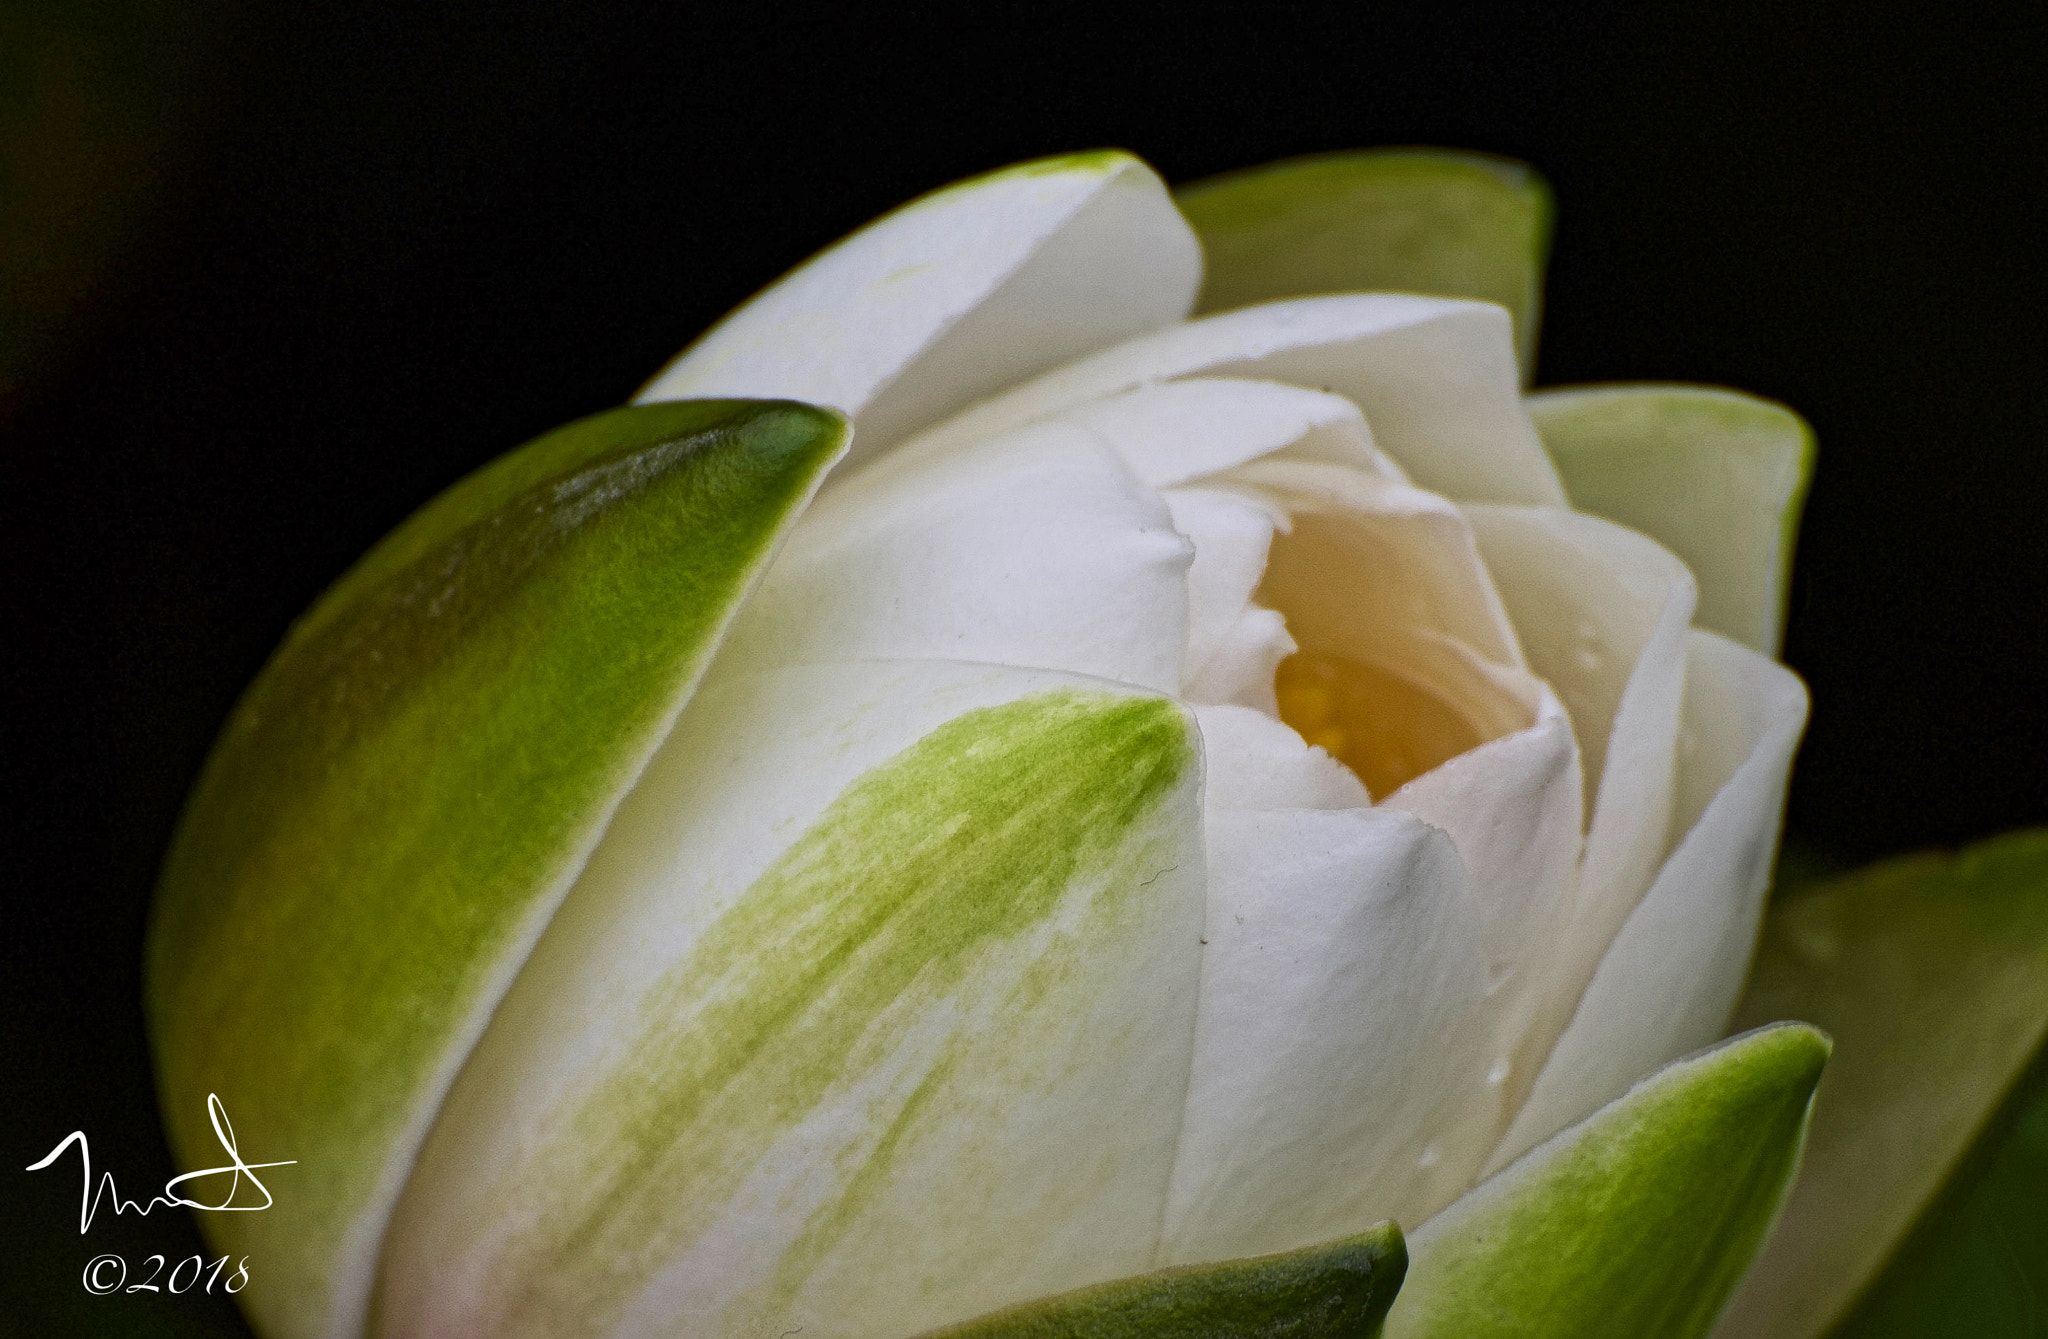 White Lotus Flower Blooming New White Lotus Flower Blooming In A